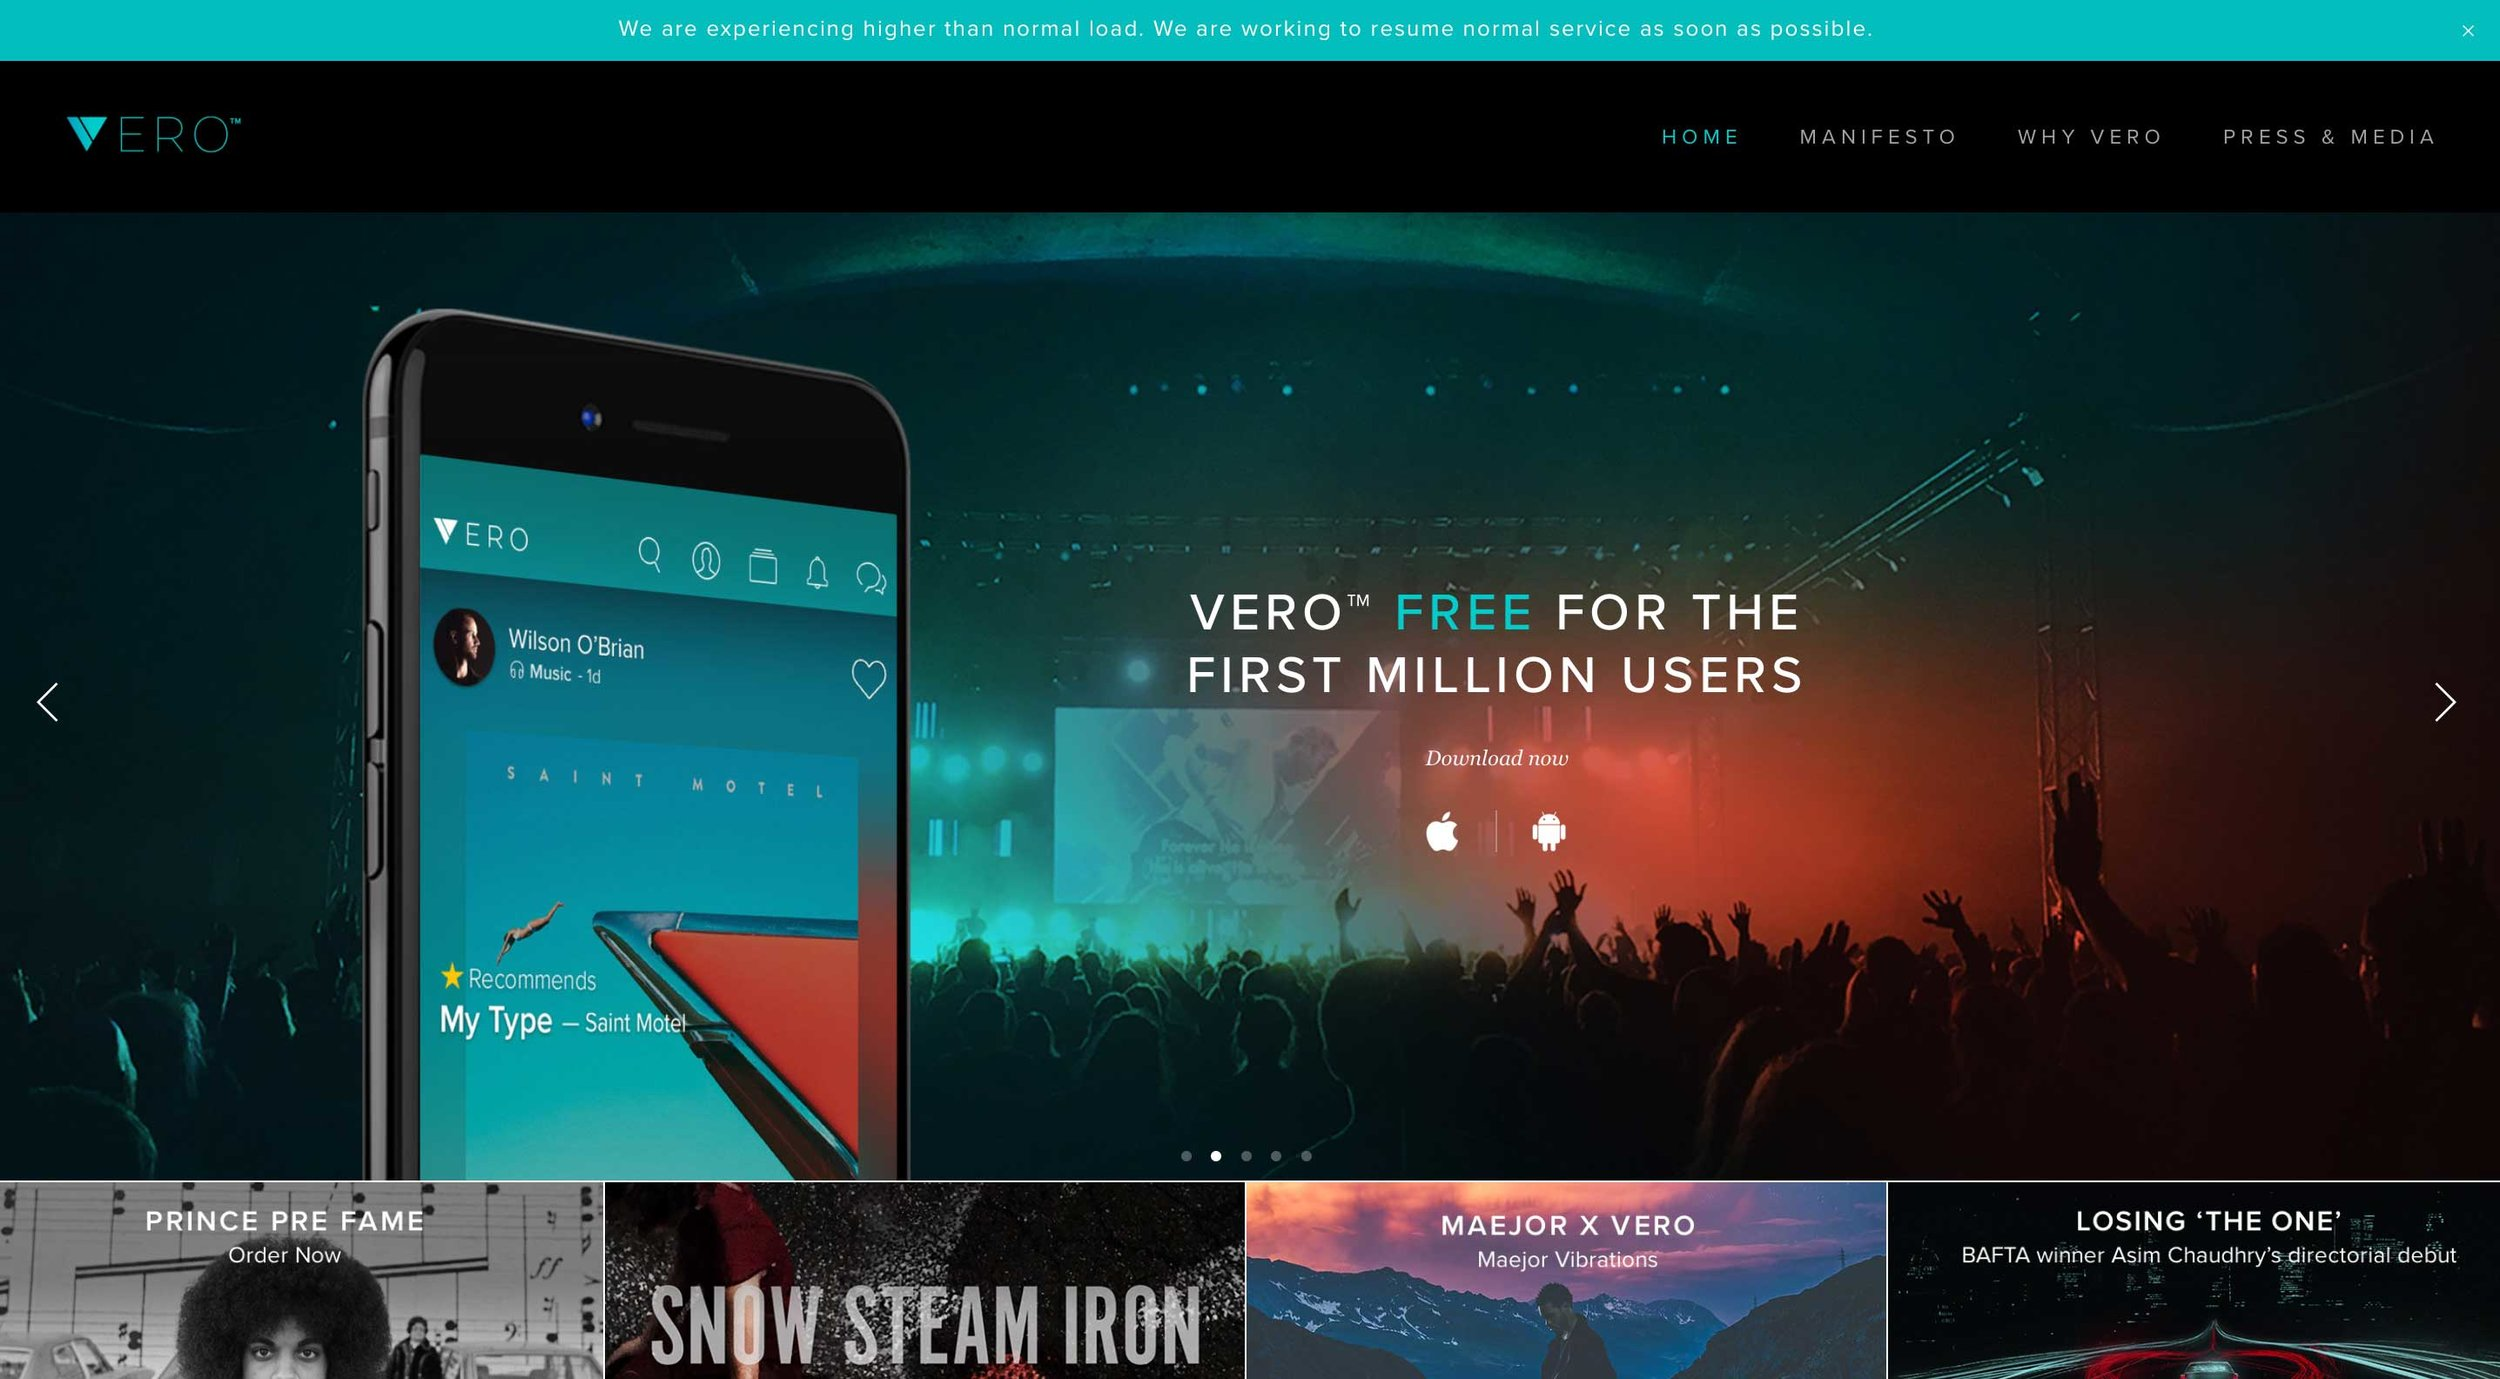 Vero website platform